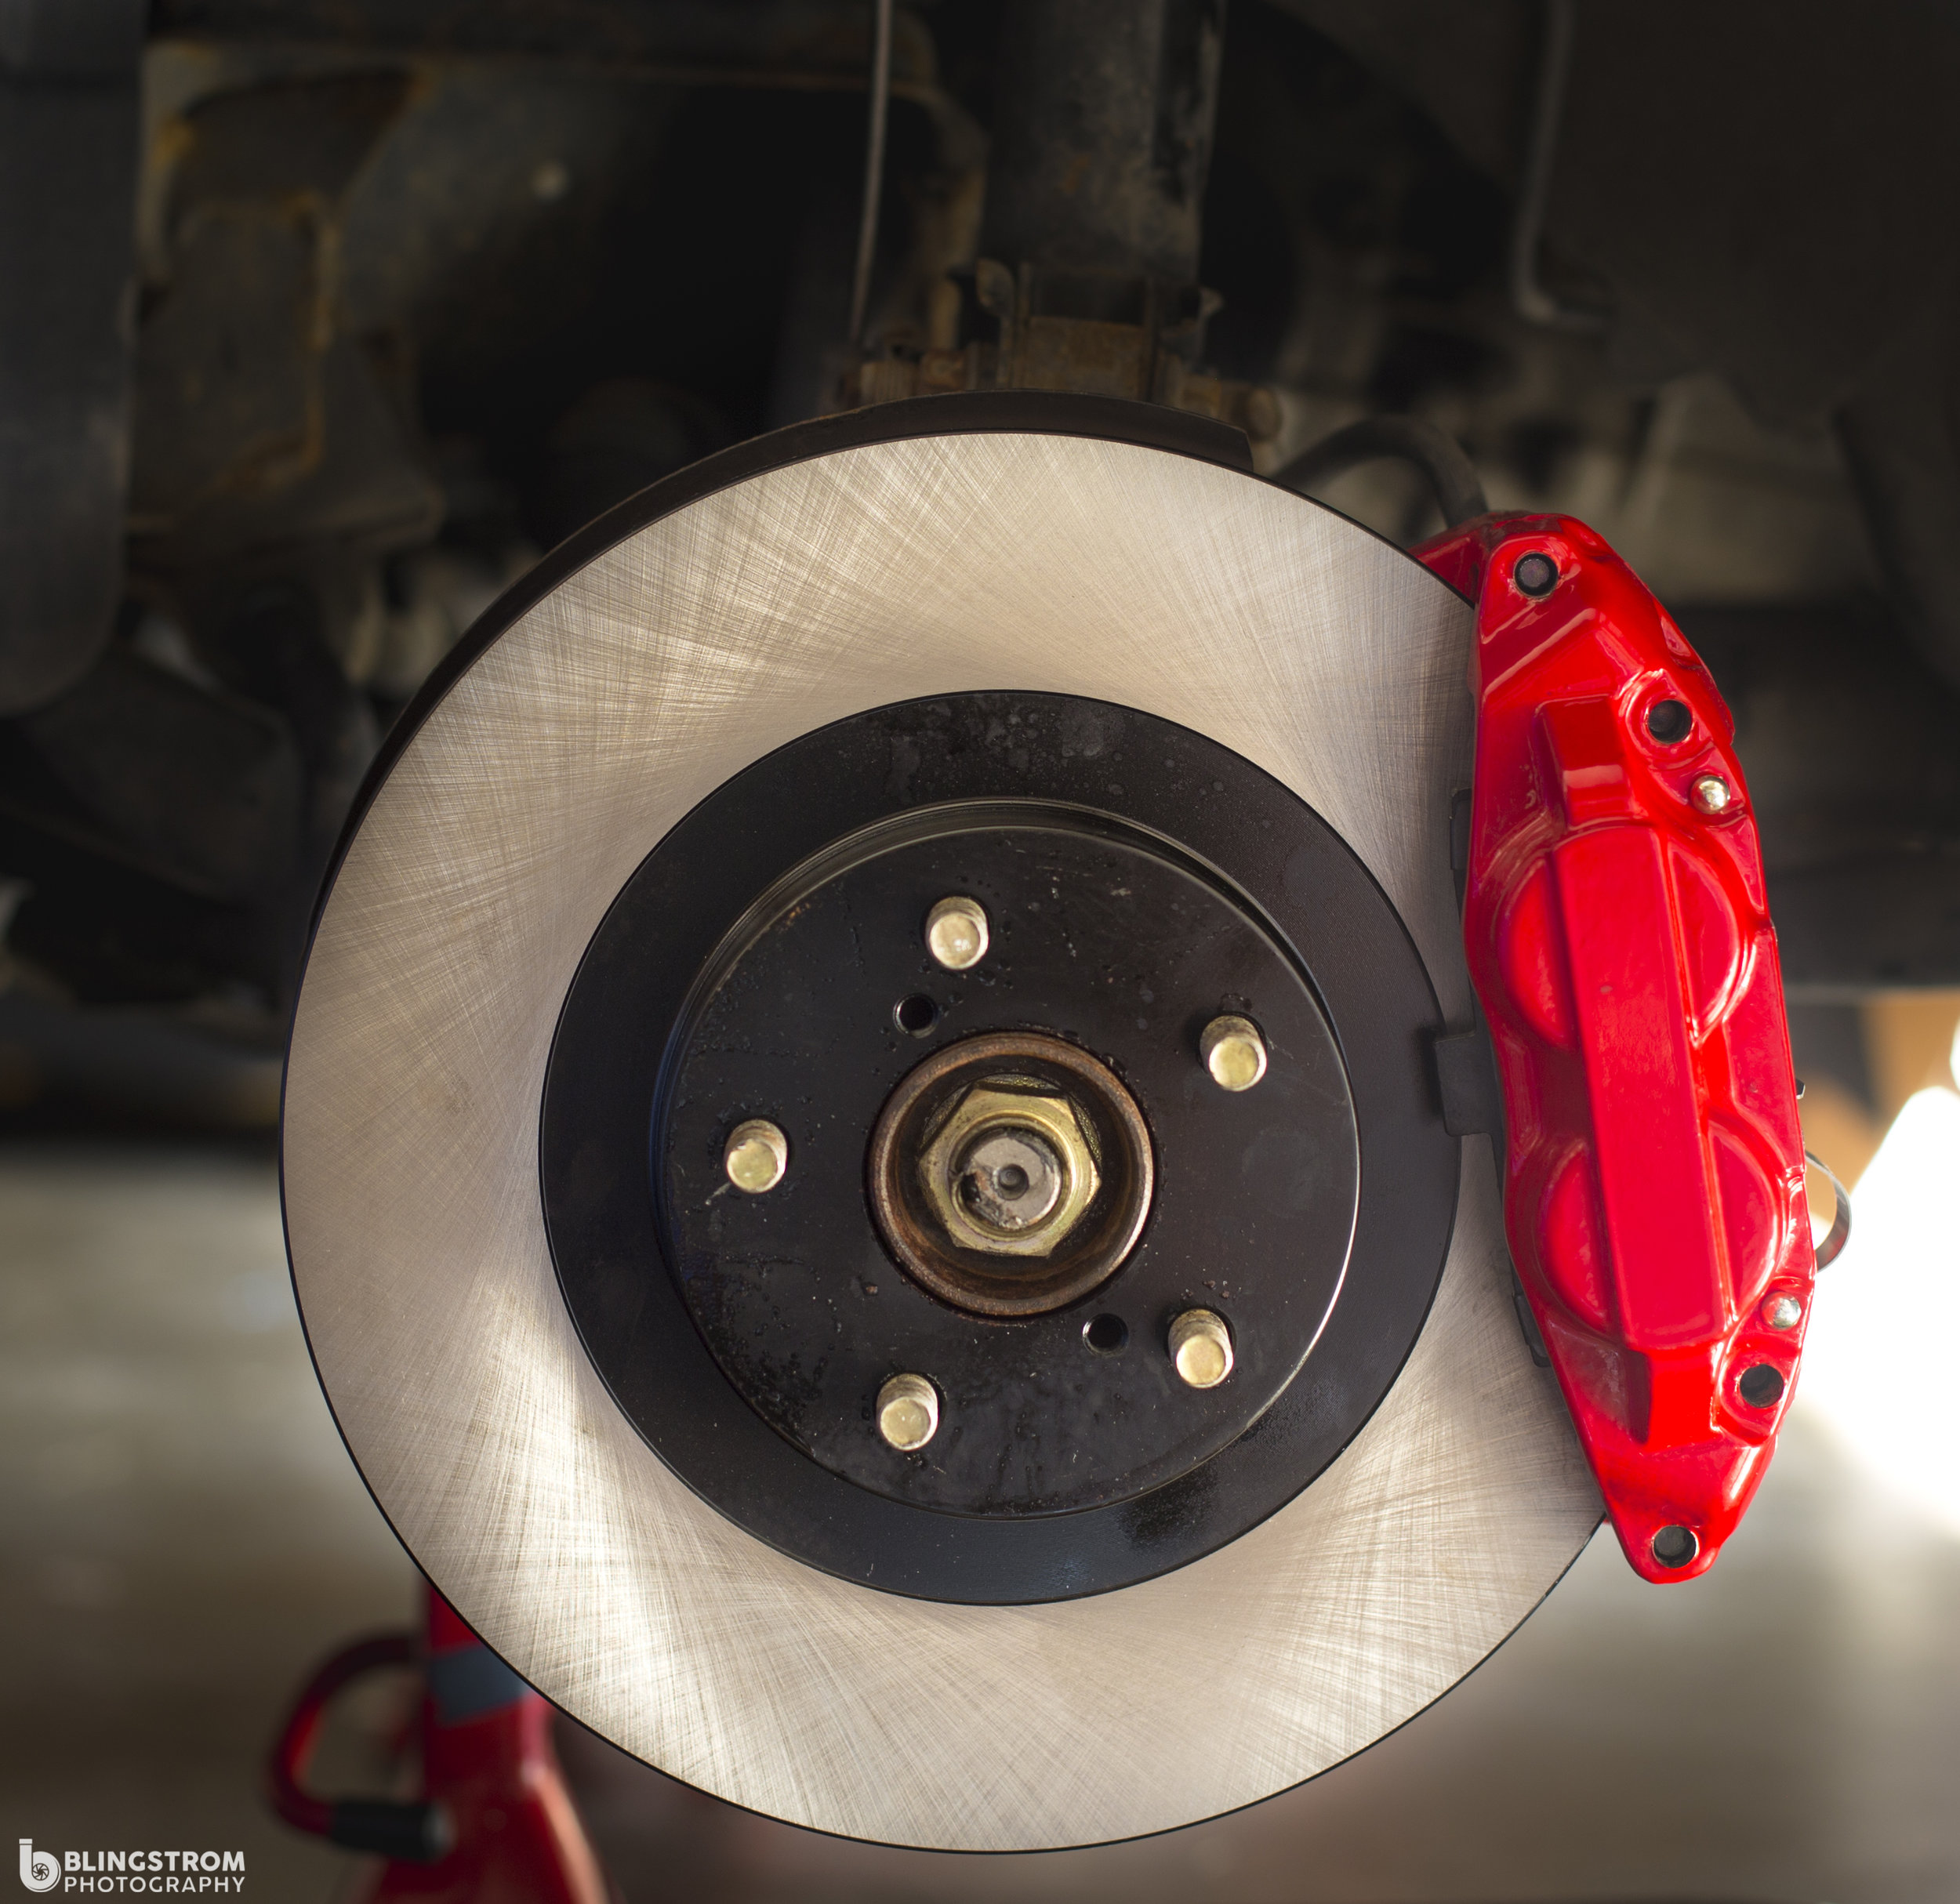 Shiny and new! This is the moment you have been waiting for. new rotors and caliper making their home.